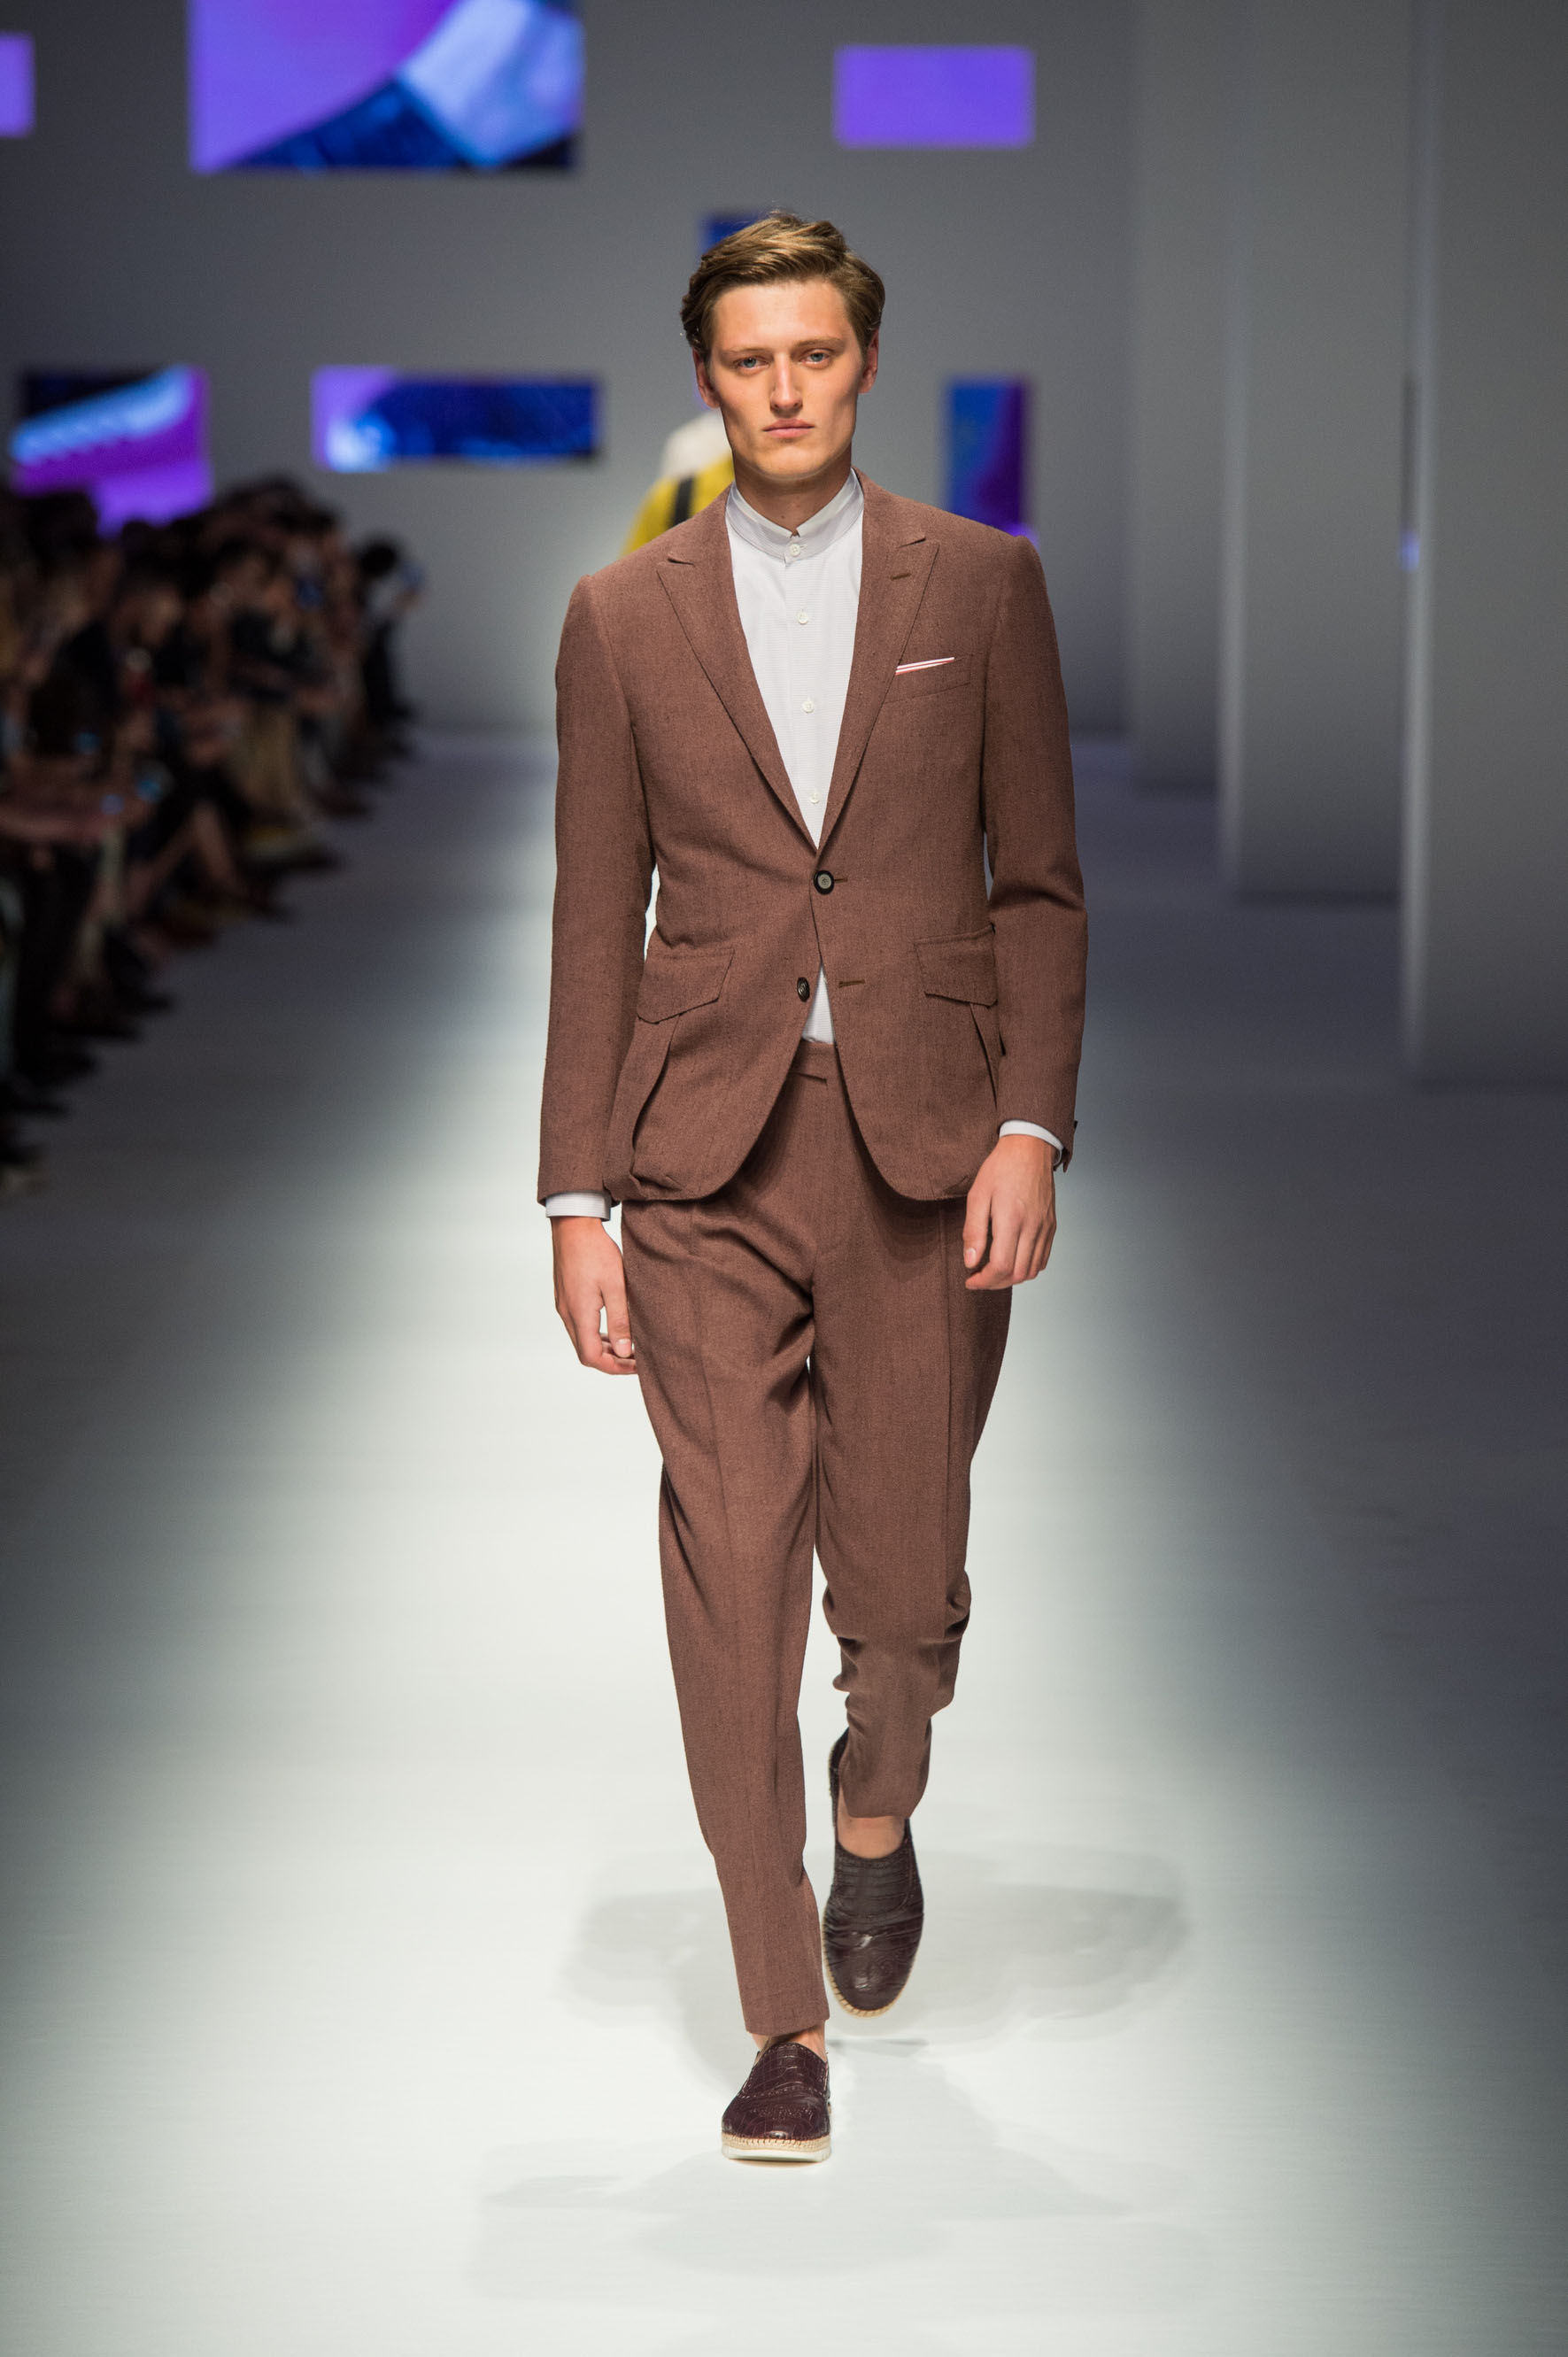 Two-button jacket with martingale and bellow in the back, reverse-pleated pants with terry effect, crocodile loafers